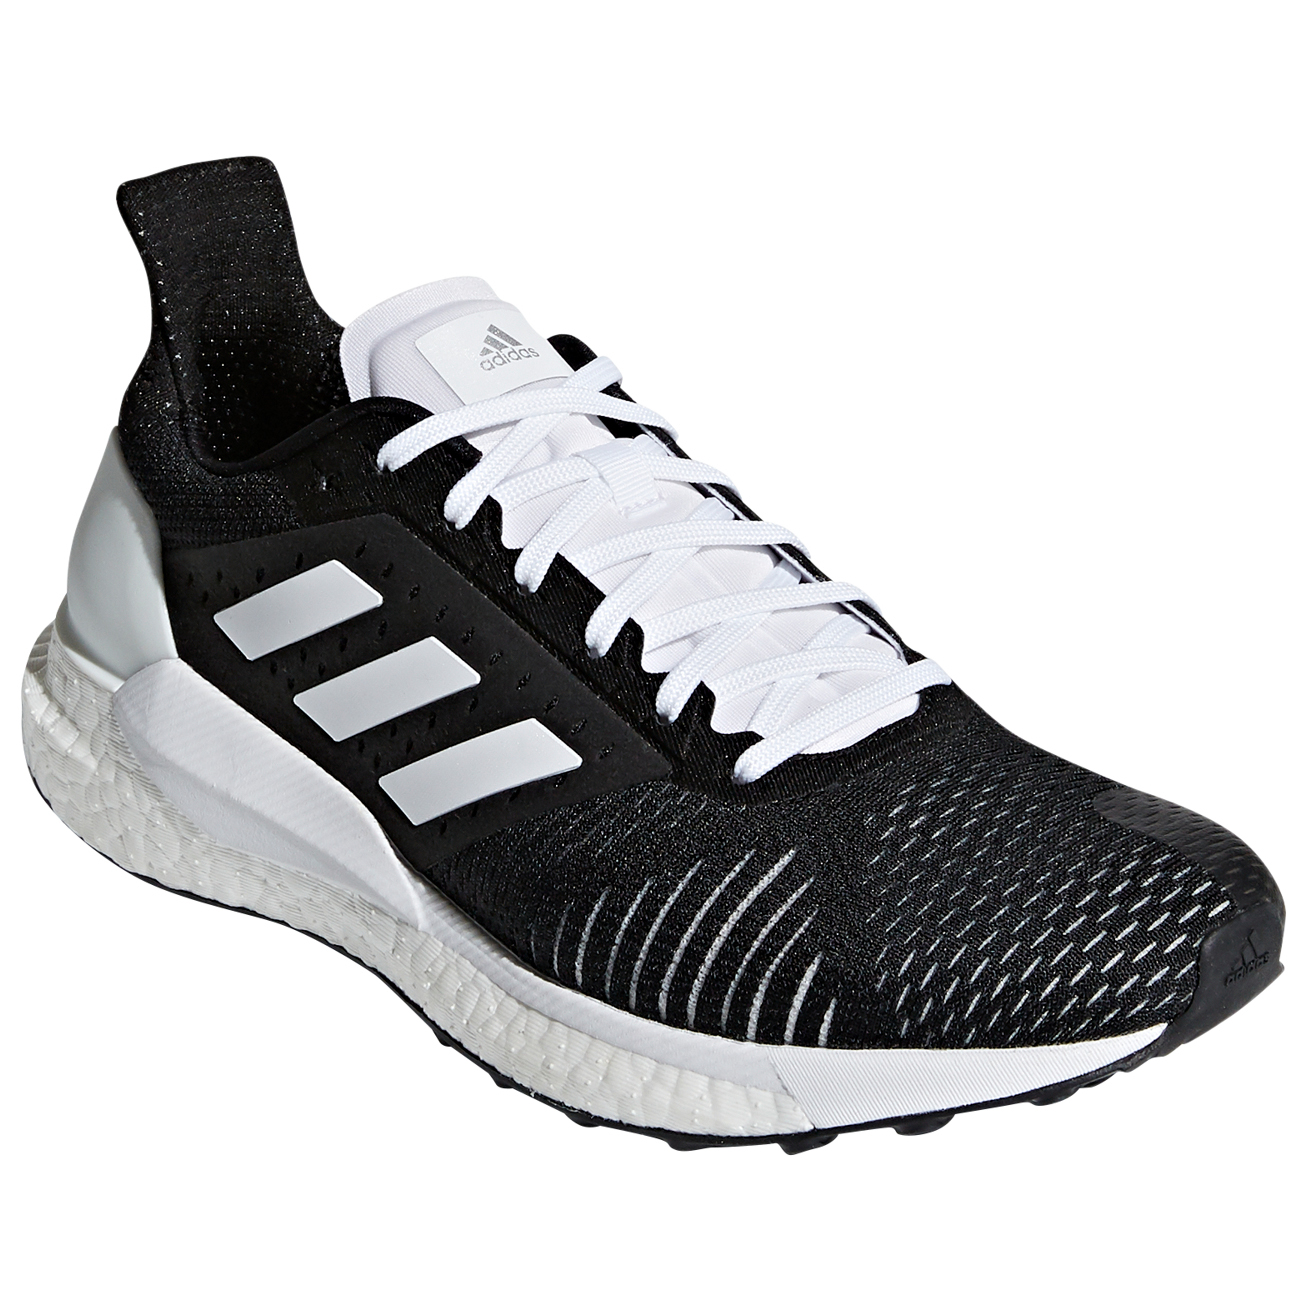 5 De Adidas Ftwr Aqua Running Women's F18 4 Res St Mint Hi Clear Glide Chaussures uk White Solar a1Hxa